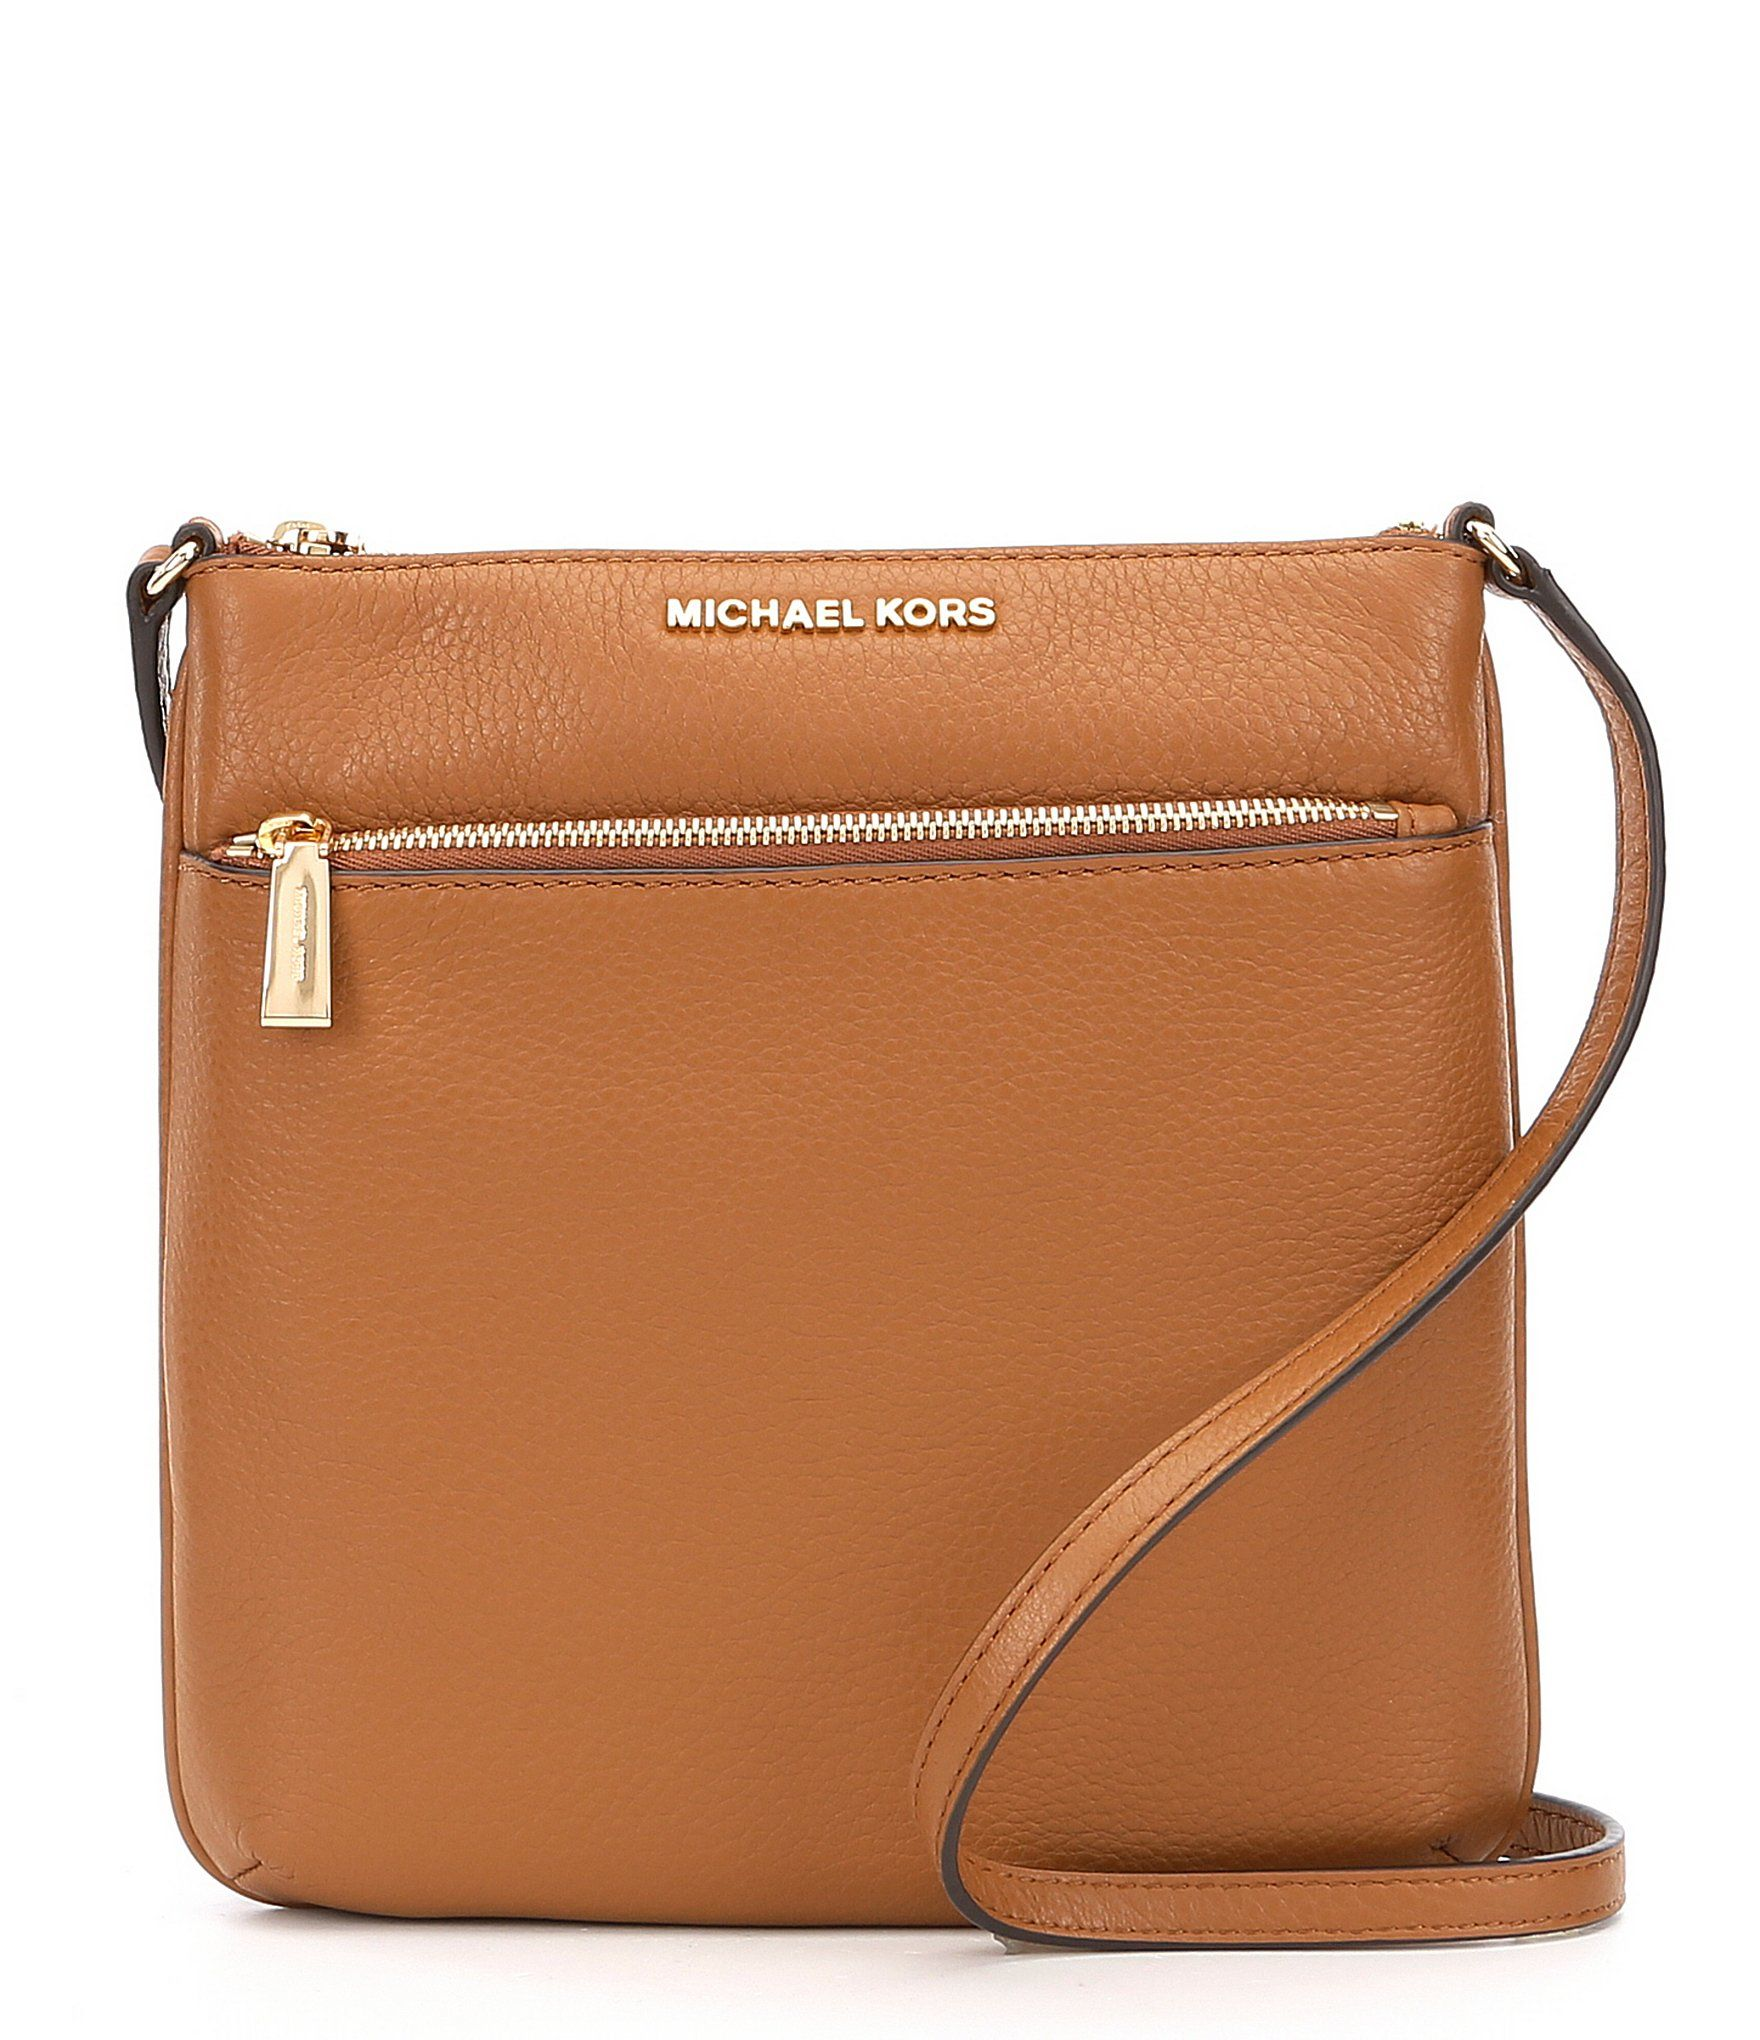 102fb65afafb Shop for MICHAEL Michael Kors Riley Small Flat Cross-Body Bag at  Dillards.com. Visit Dillards.com to find clothing, accessories, shoes,  cosmetics & more.